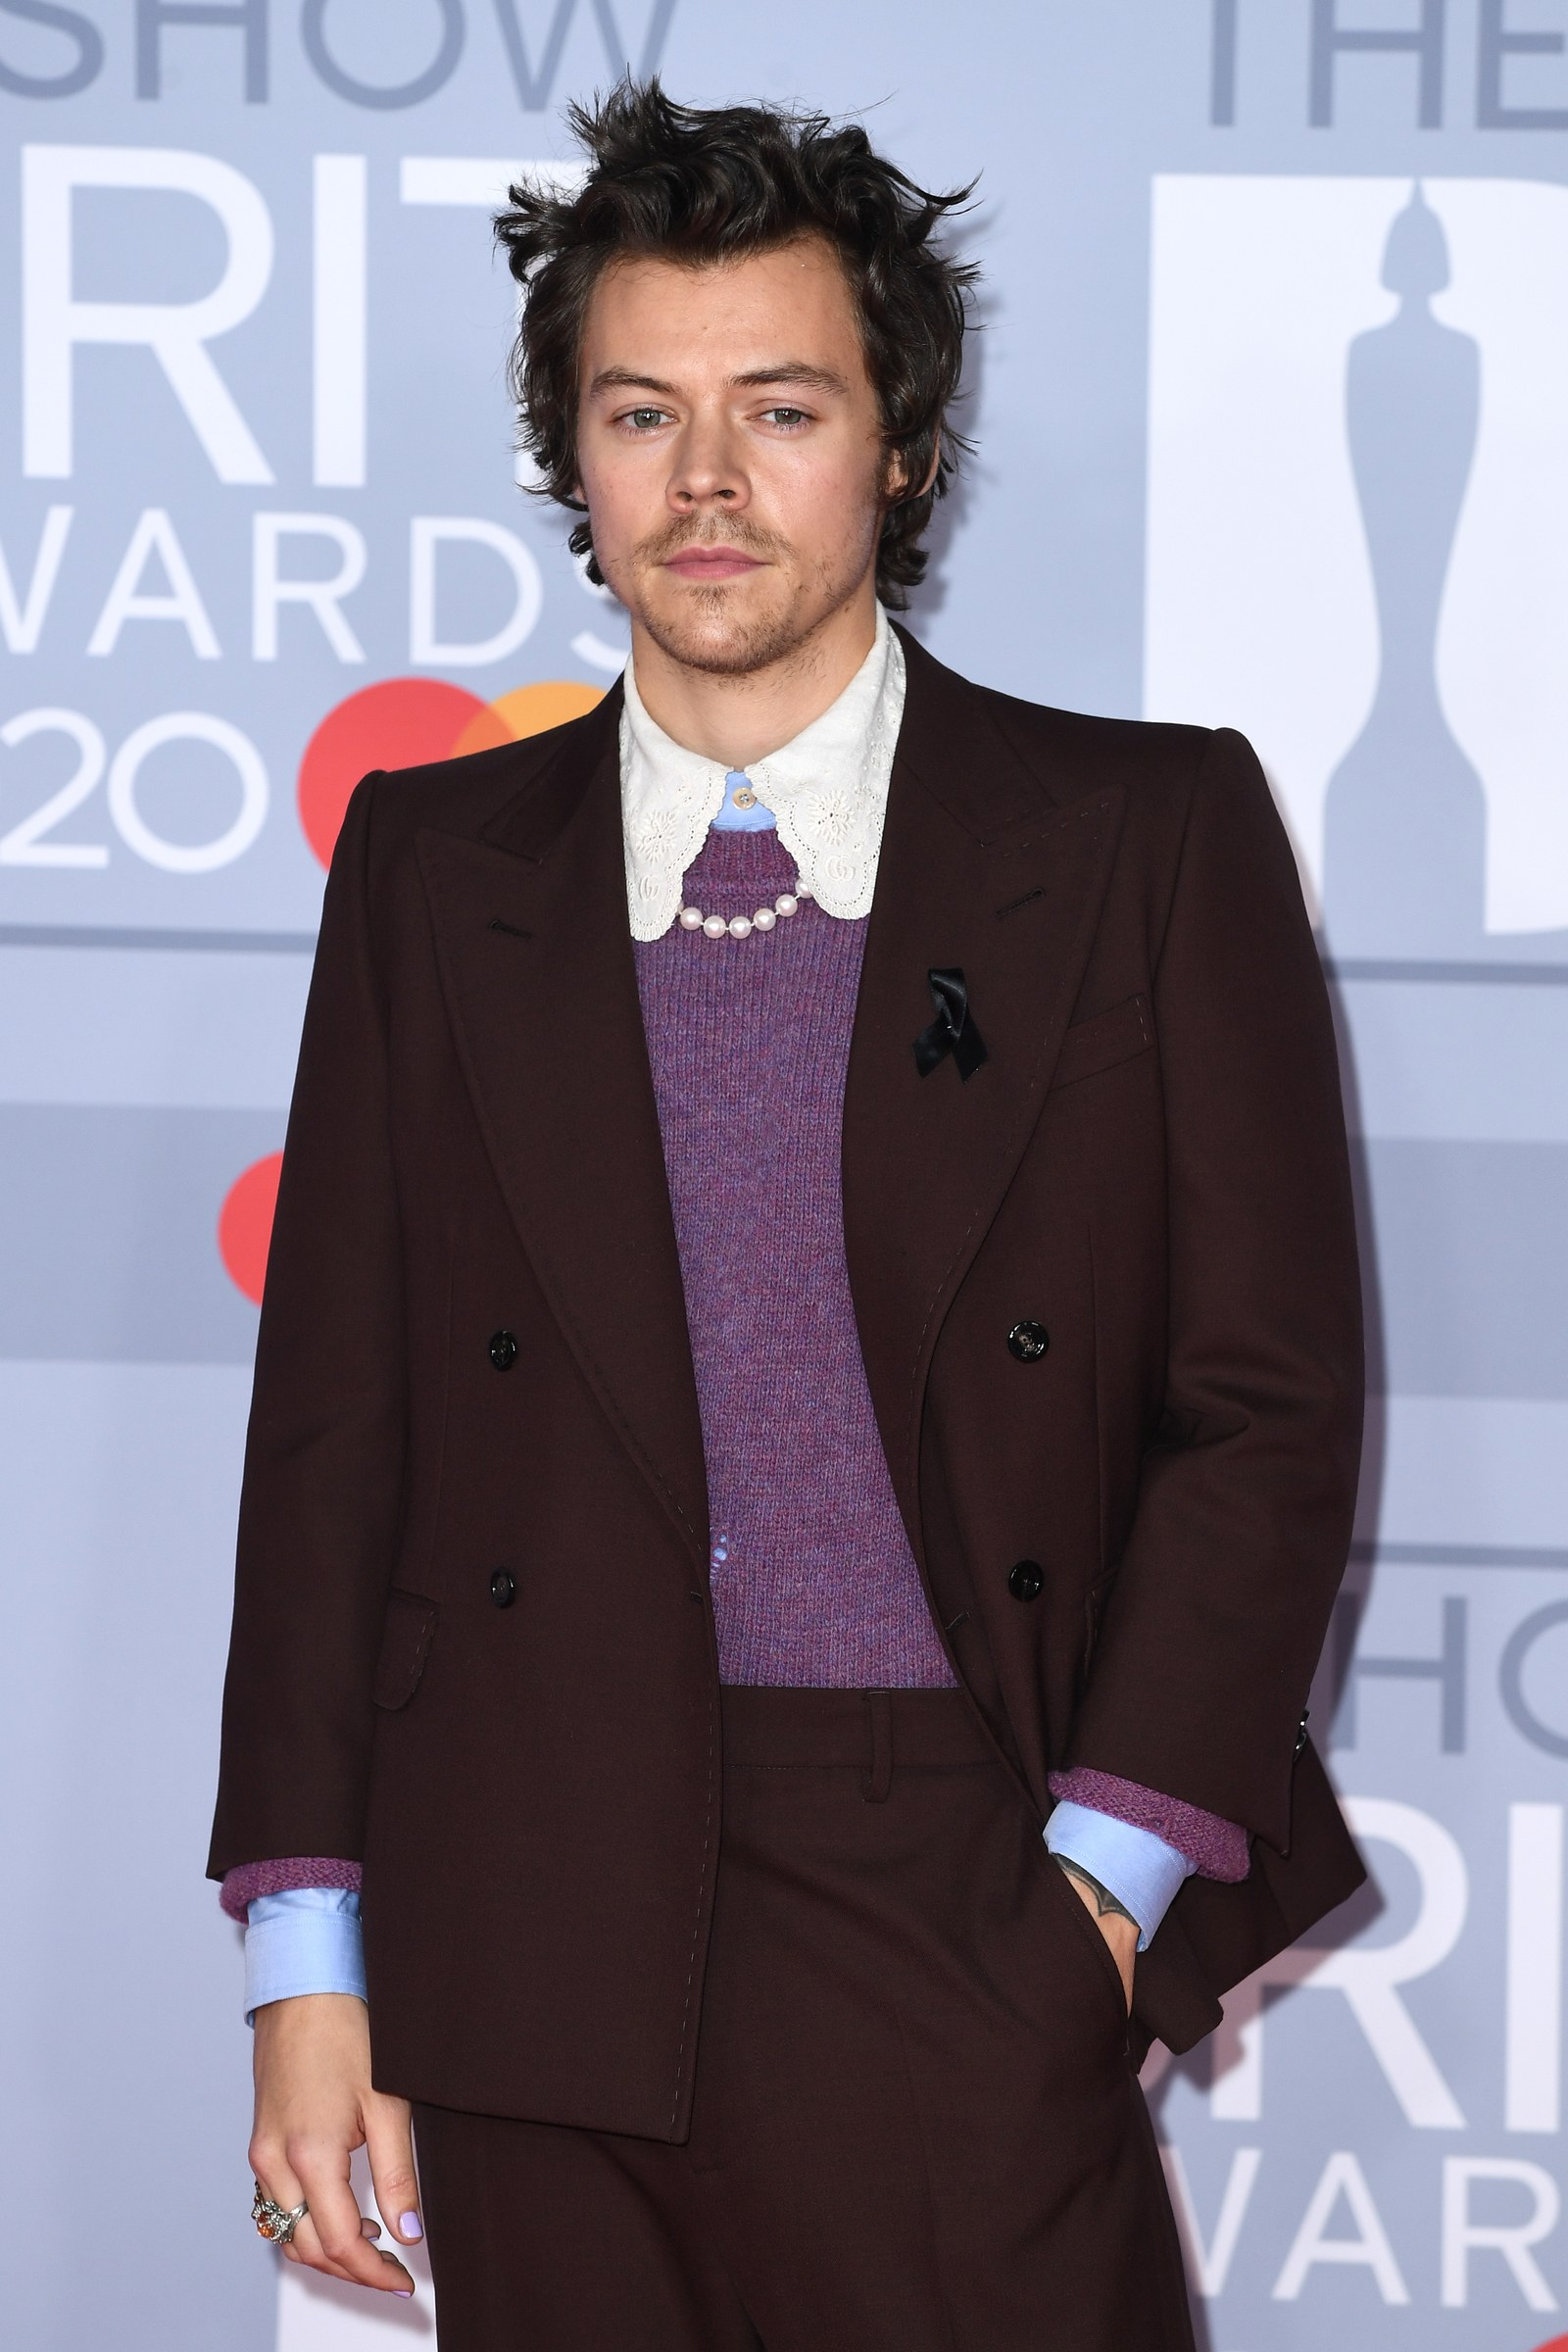 Harry Styles wearing pearls at the Brit Awards